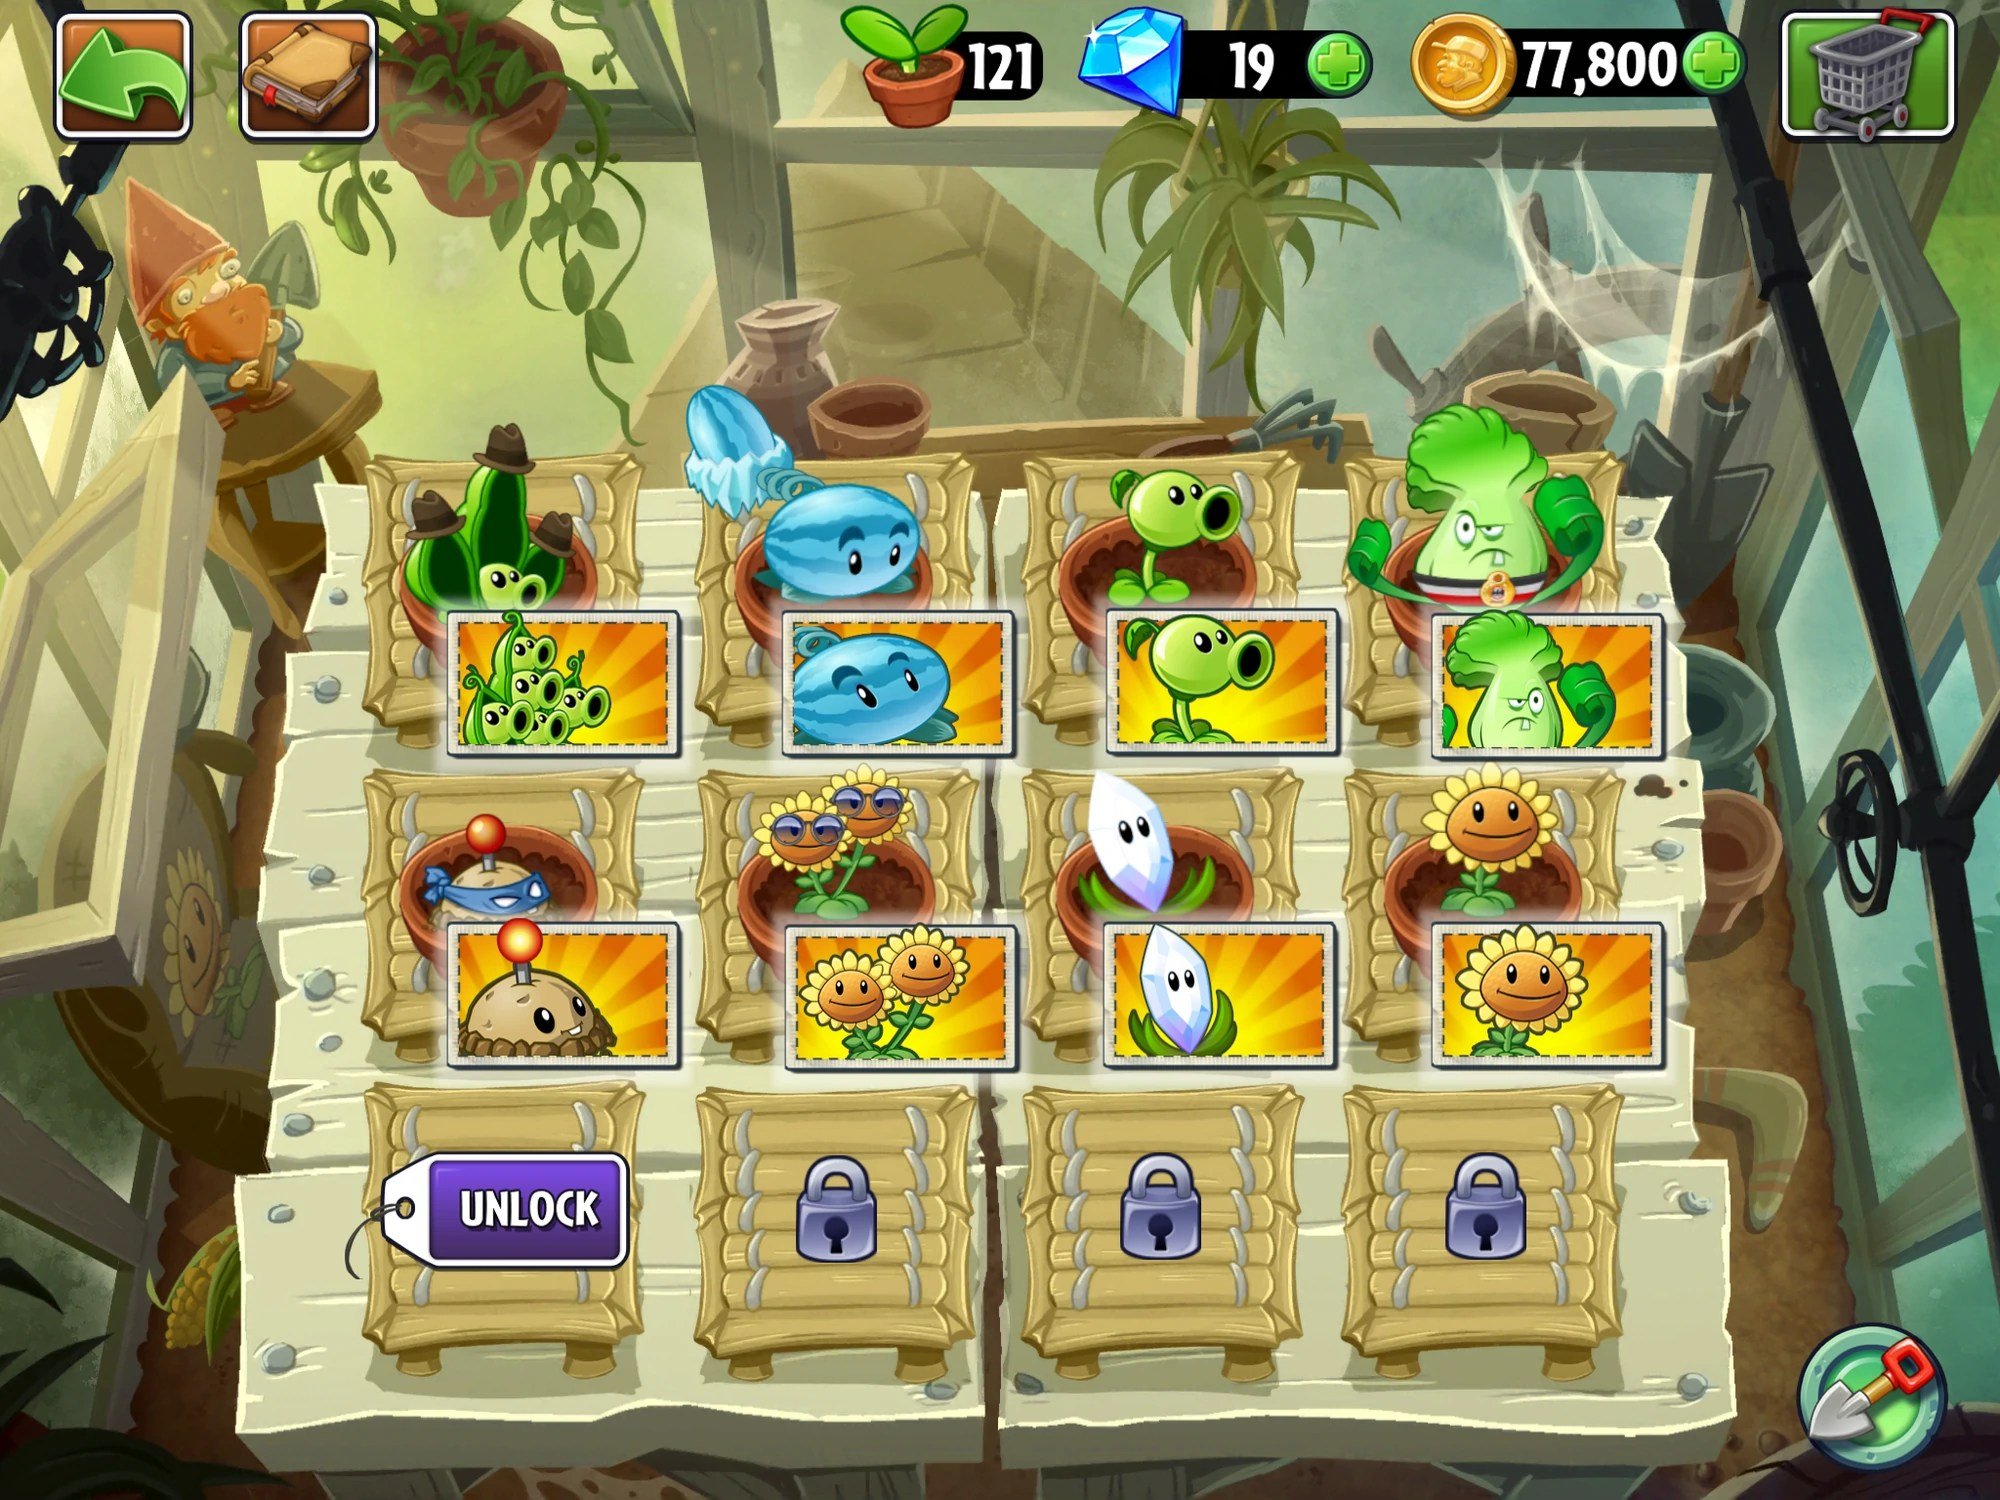 Zen Garten Plants Vs Zombies Zen Garden Plants Vs Zombies 2 Plants Vs Zombies